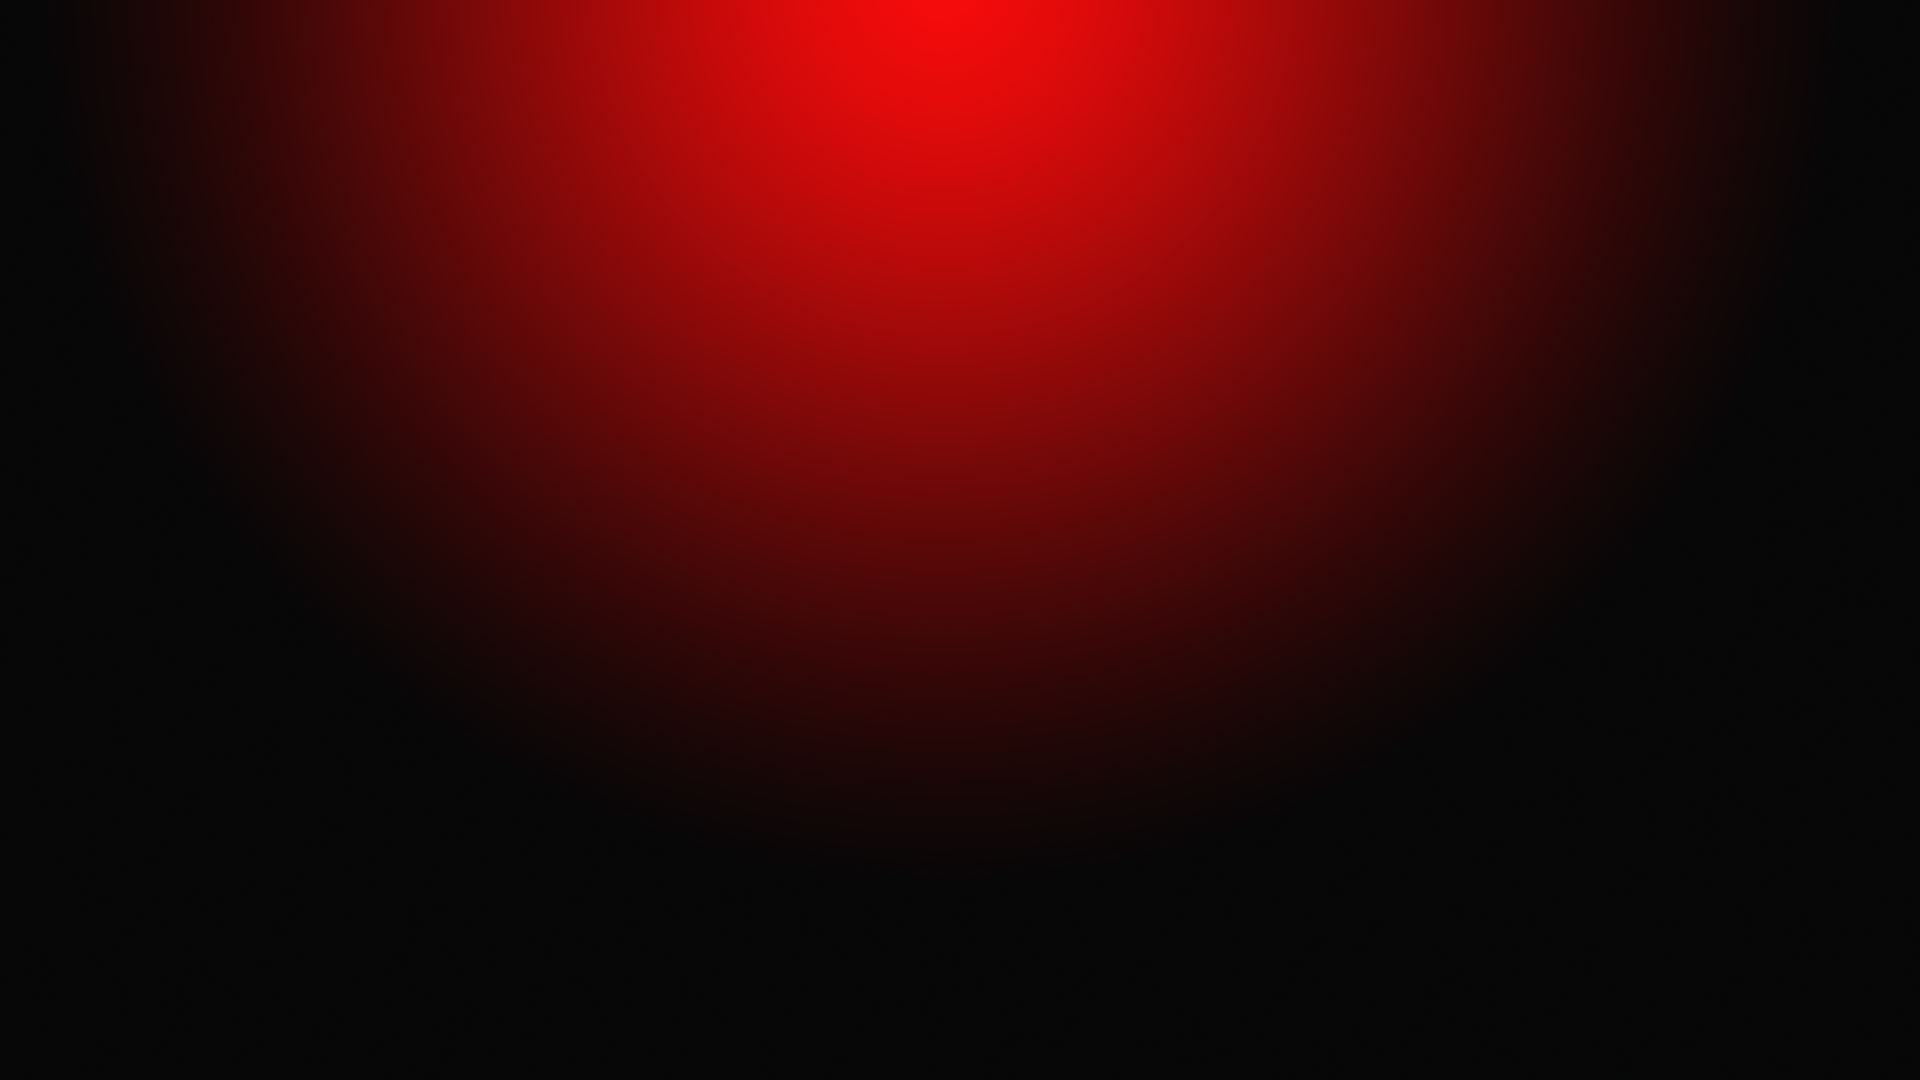 red-and-black-background-picture-17-free-wallpaper